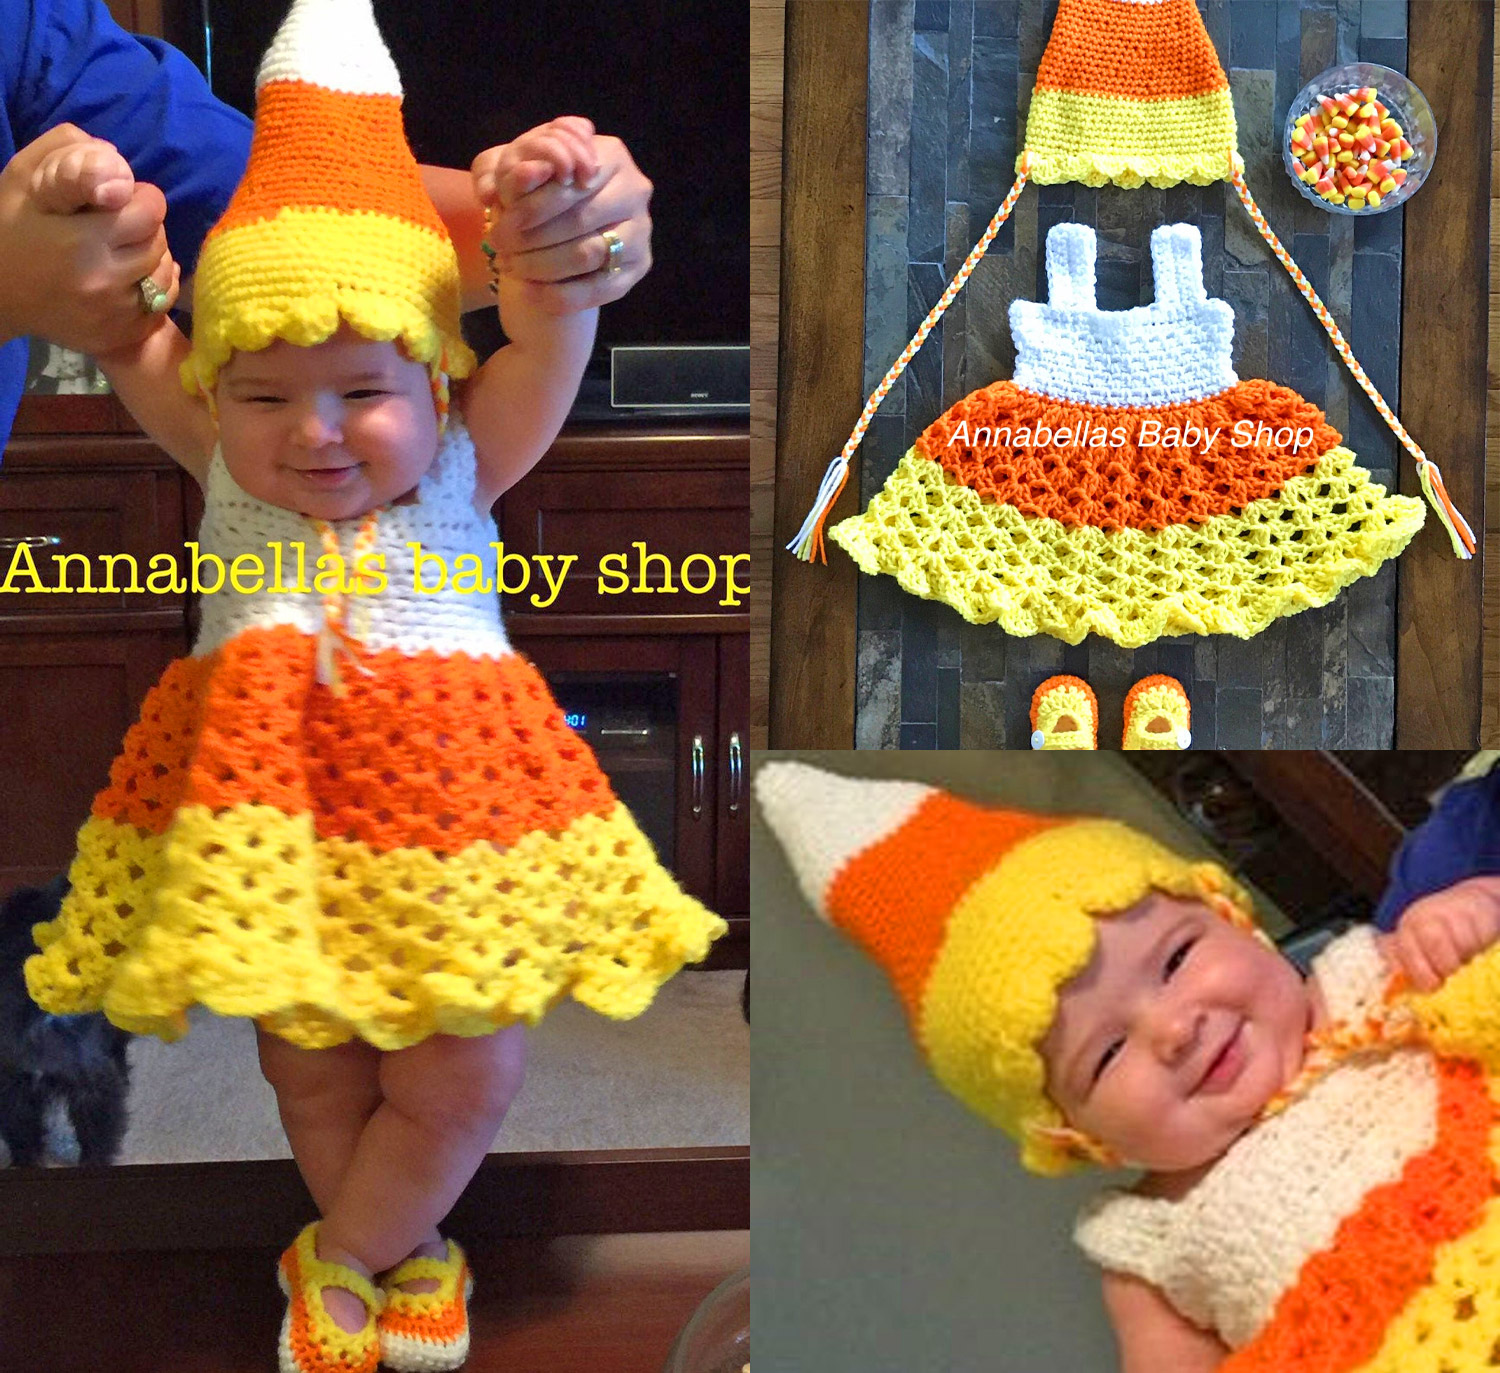 This Crochet Candy Corn Baby Costume Might Be The Cutest Halloween Idea